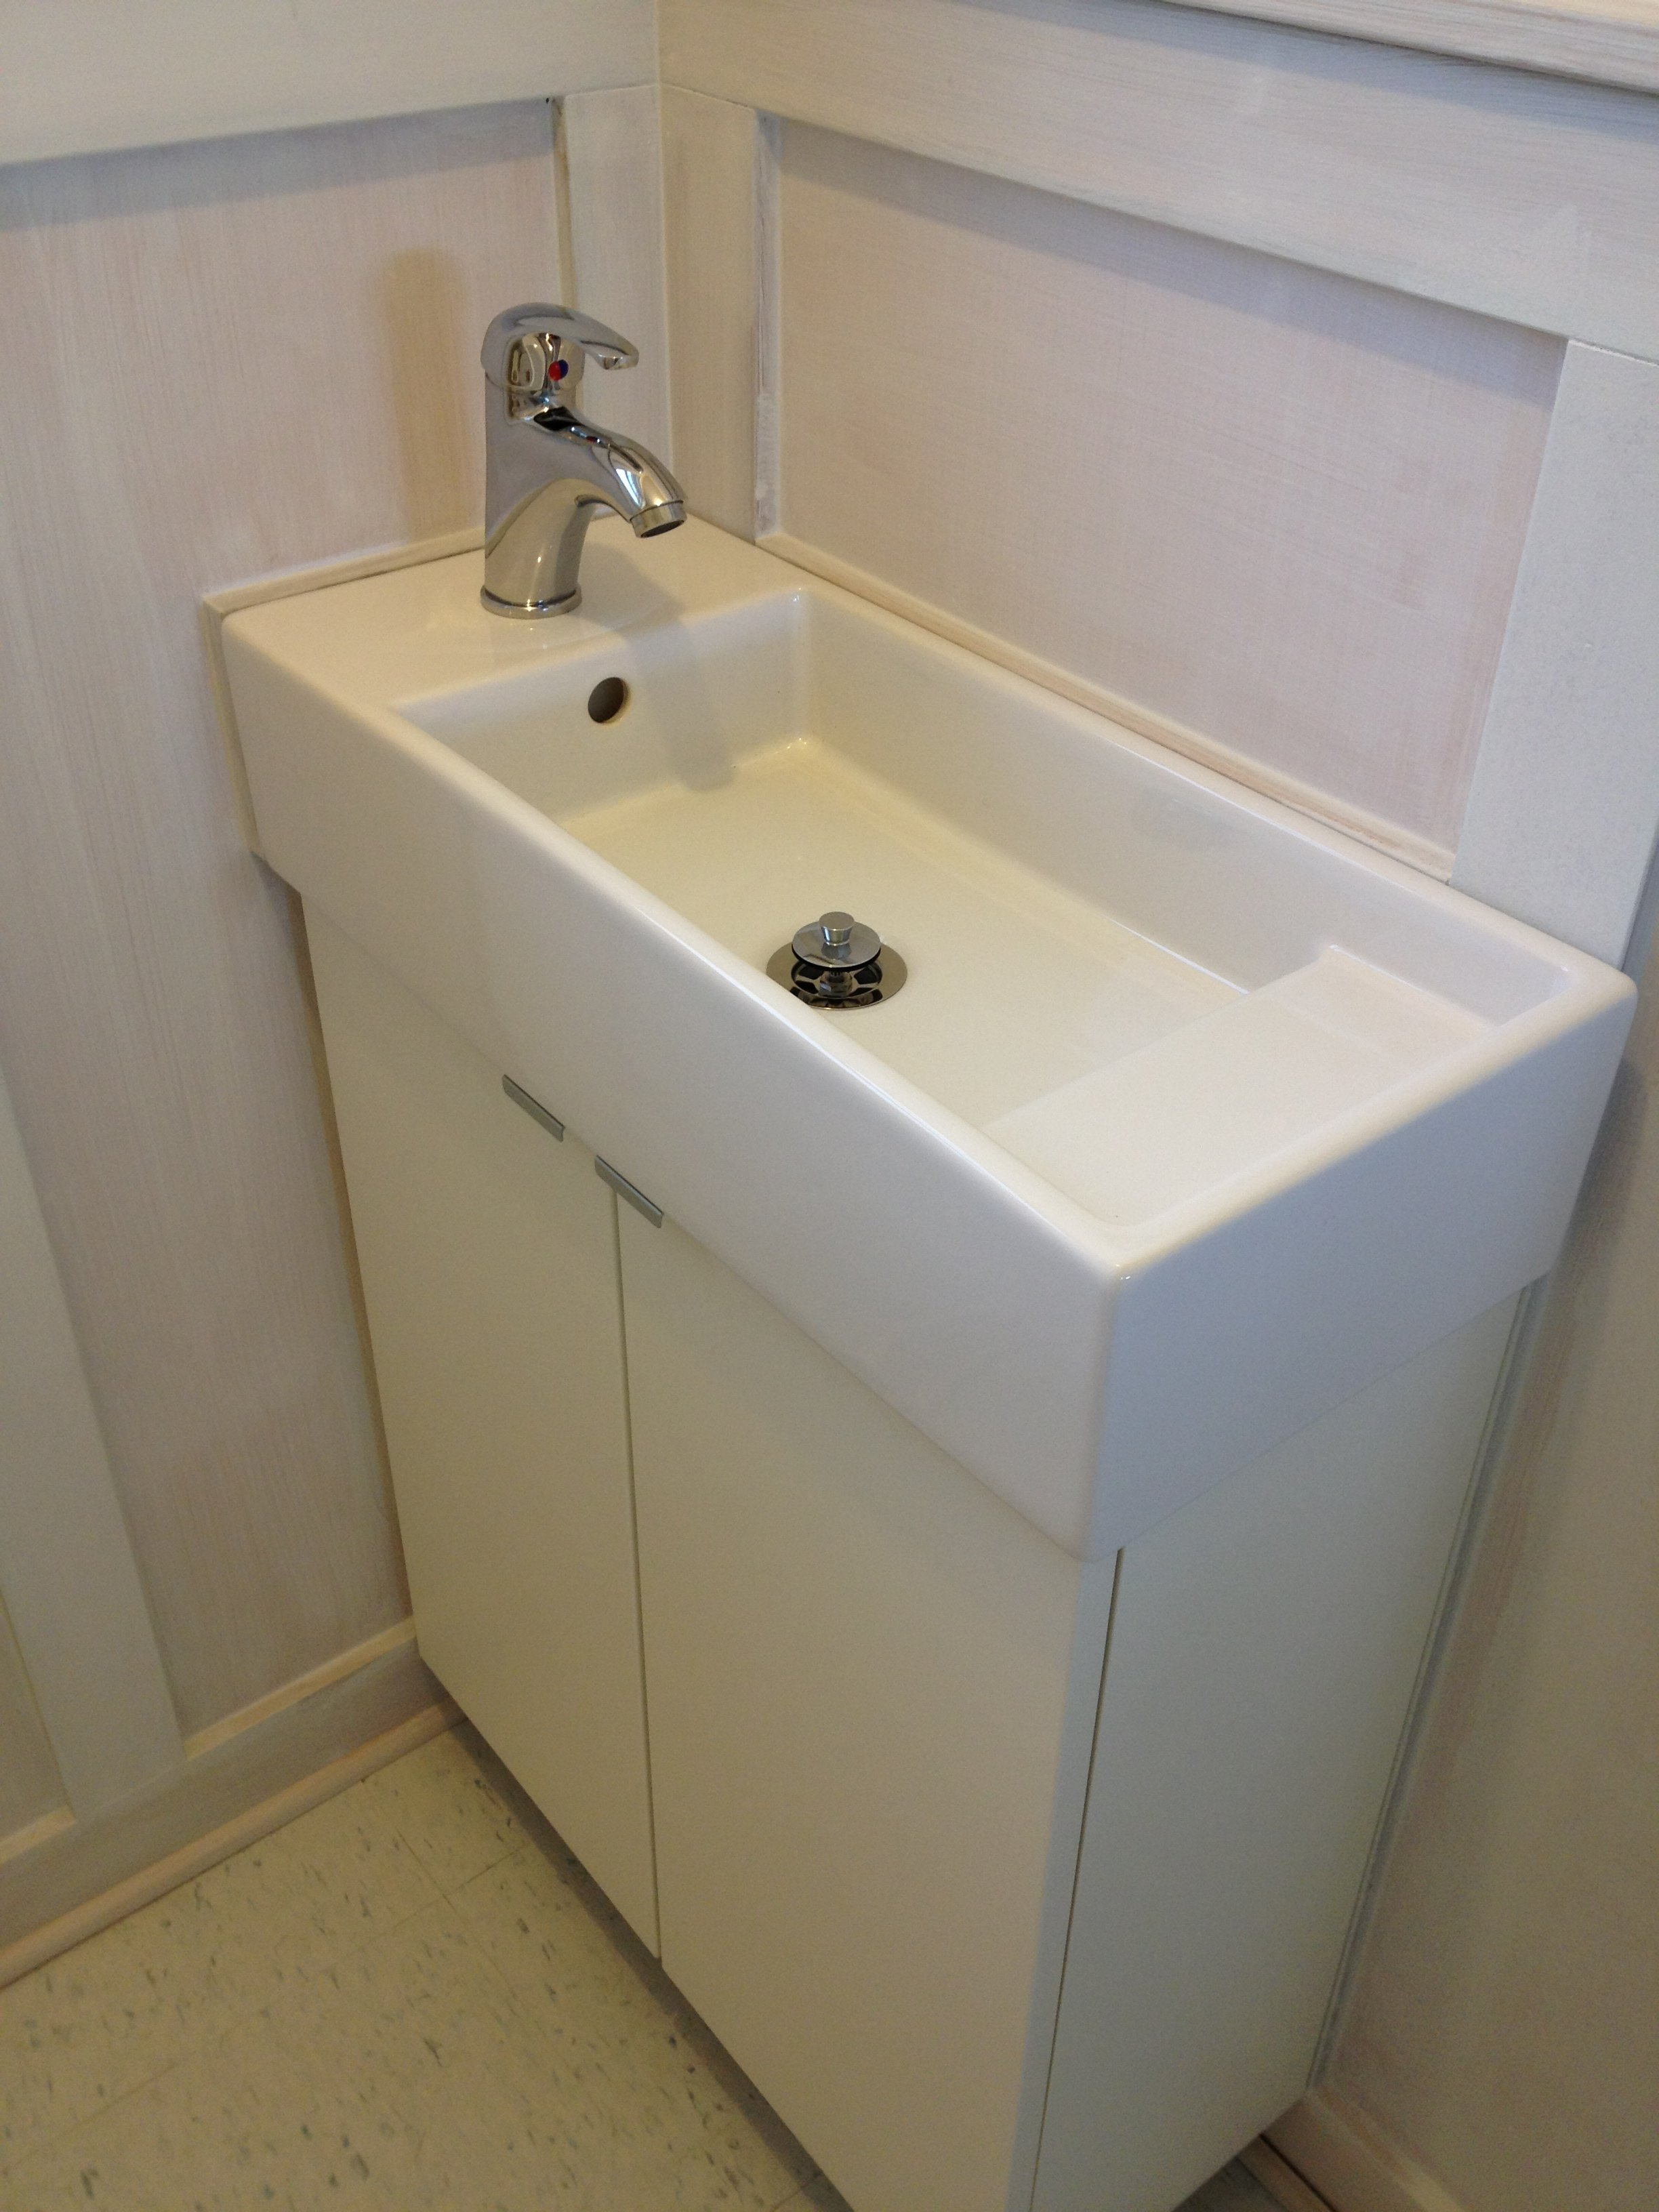 Lillangen Sink from Ikea with Krakskar faucet WNY Handyman